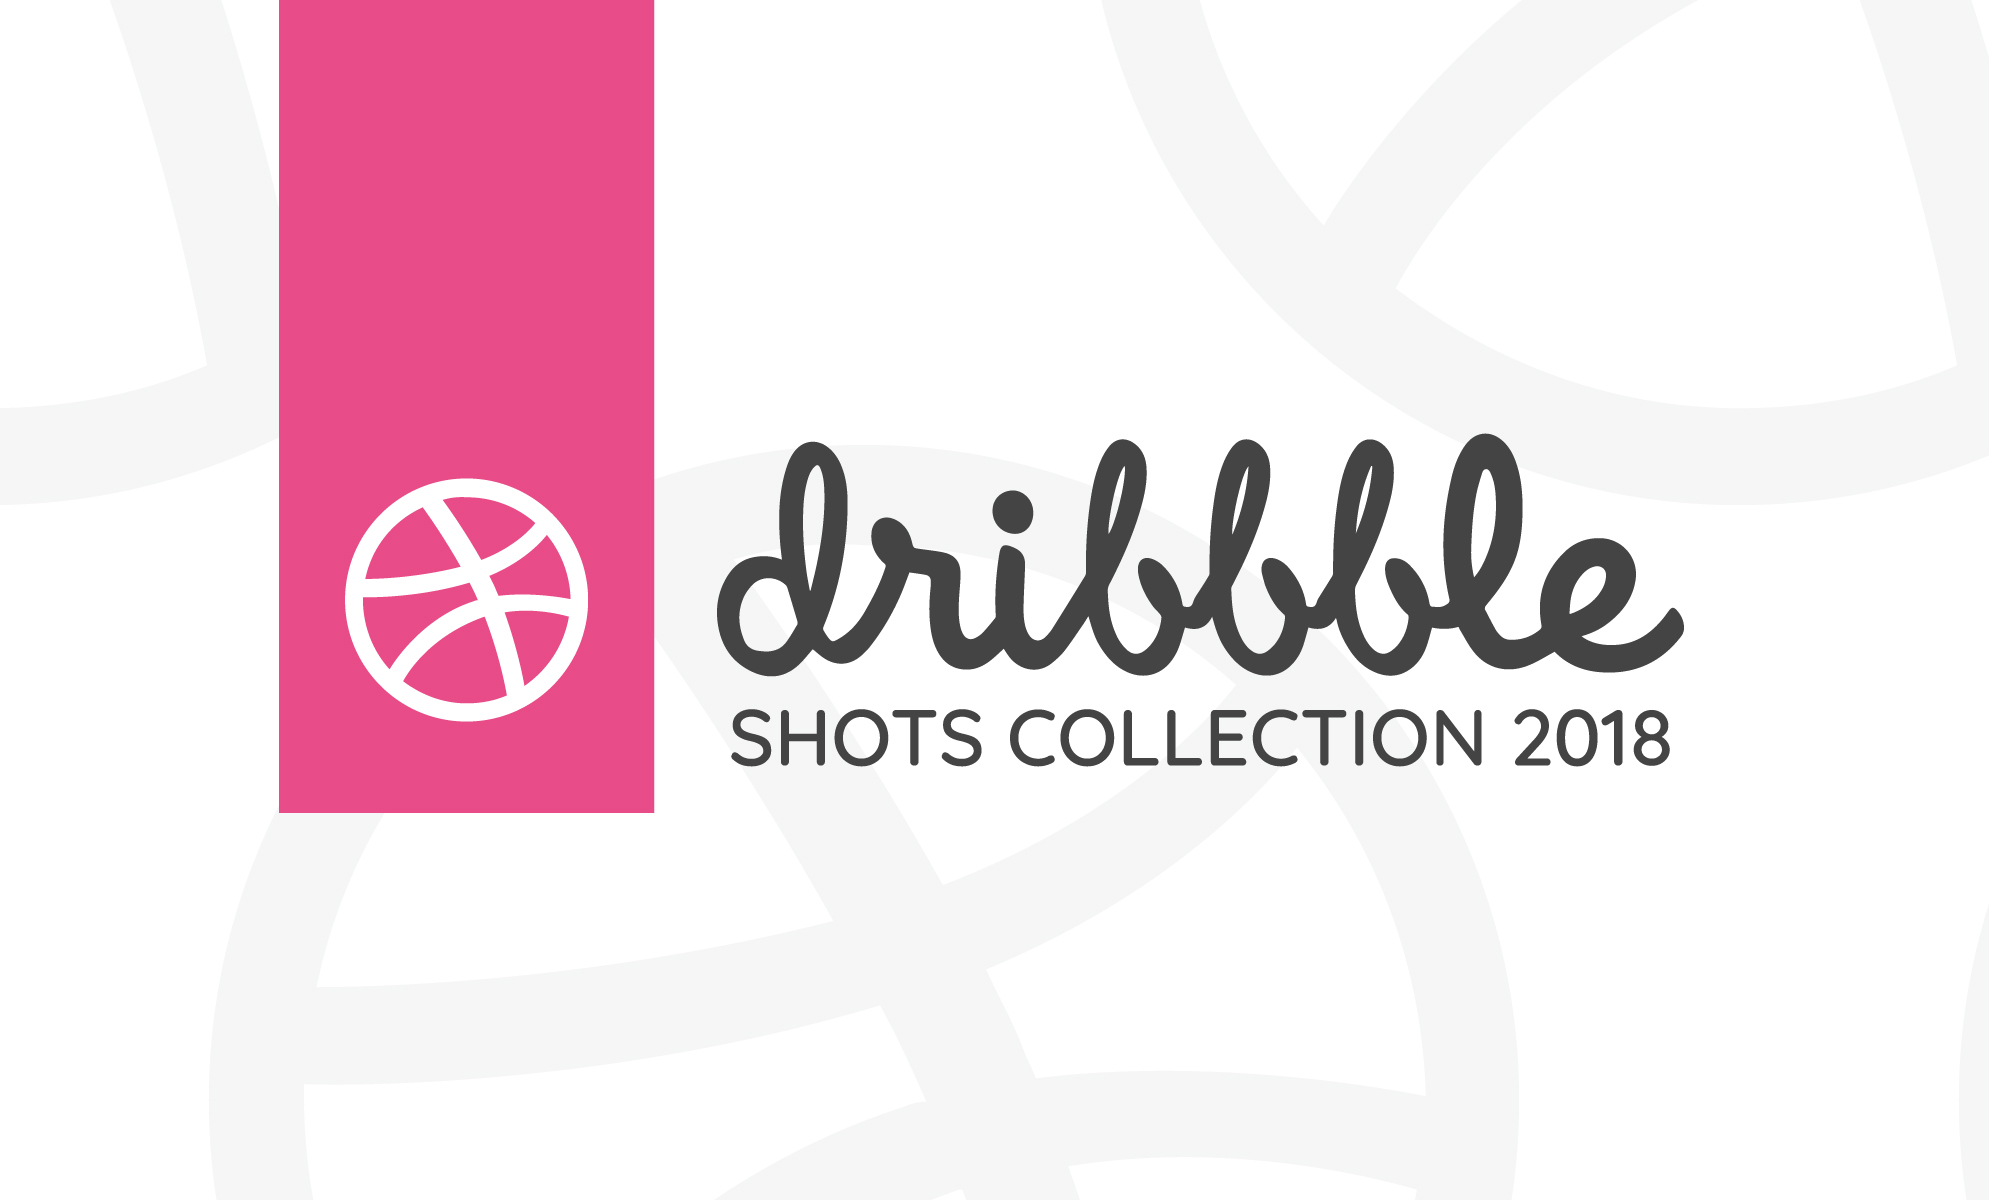 dribbble-shots-collection-2018-slider